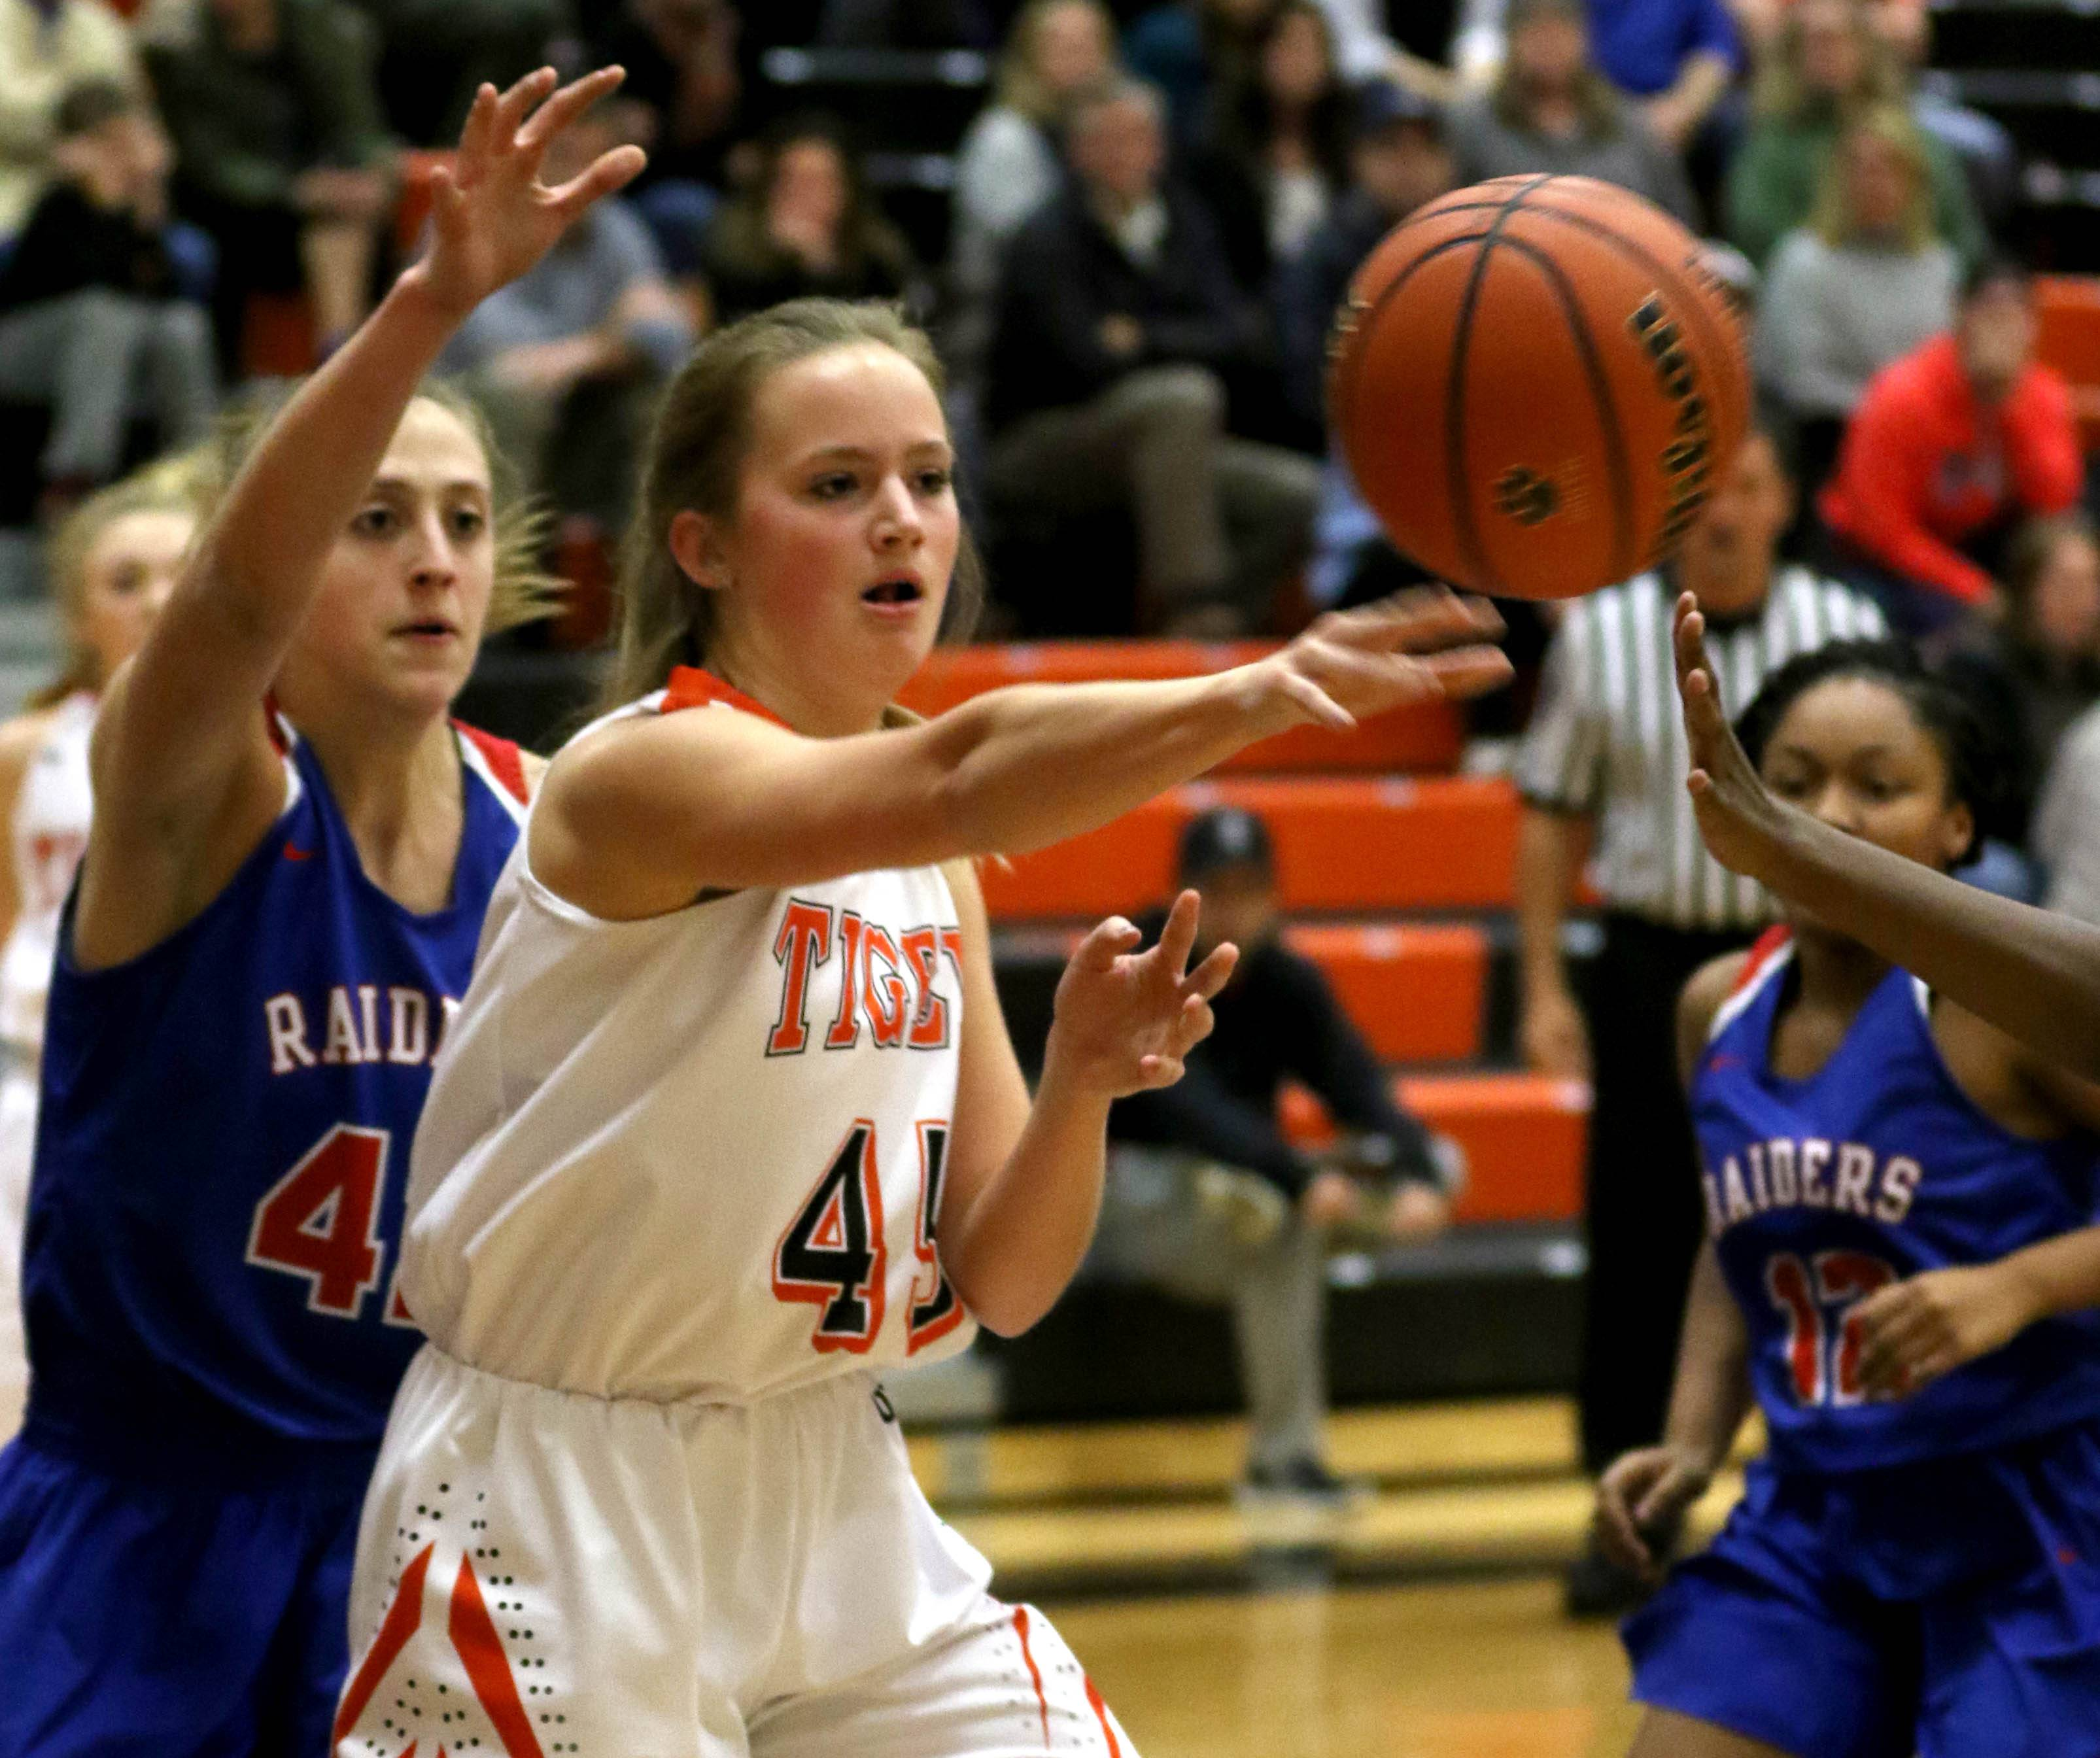 Wheaton Warrenville South's Katie Kroehnke dishes the ball against Glenbard South during varsity girls basketball at Wheaton Warrenville South High School Wednesday evening.